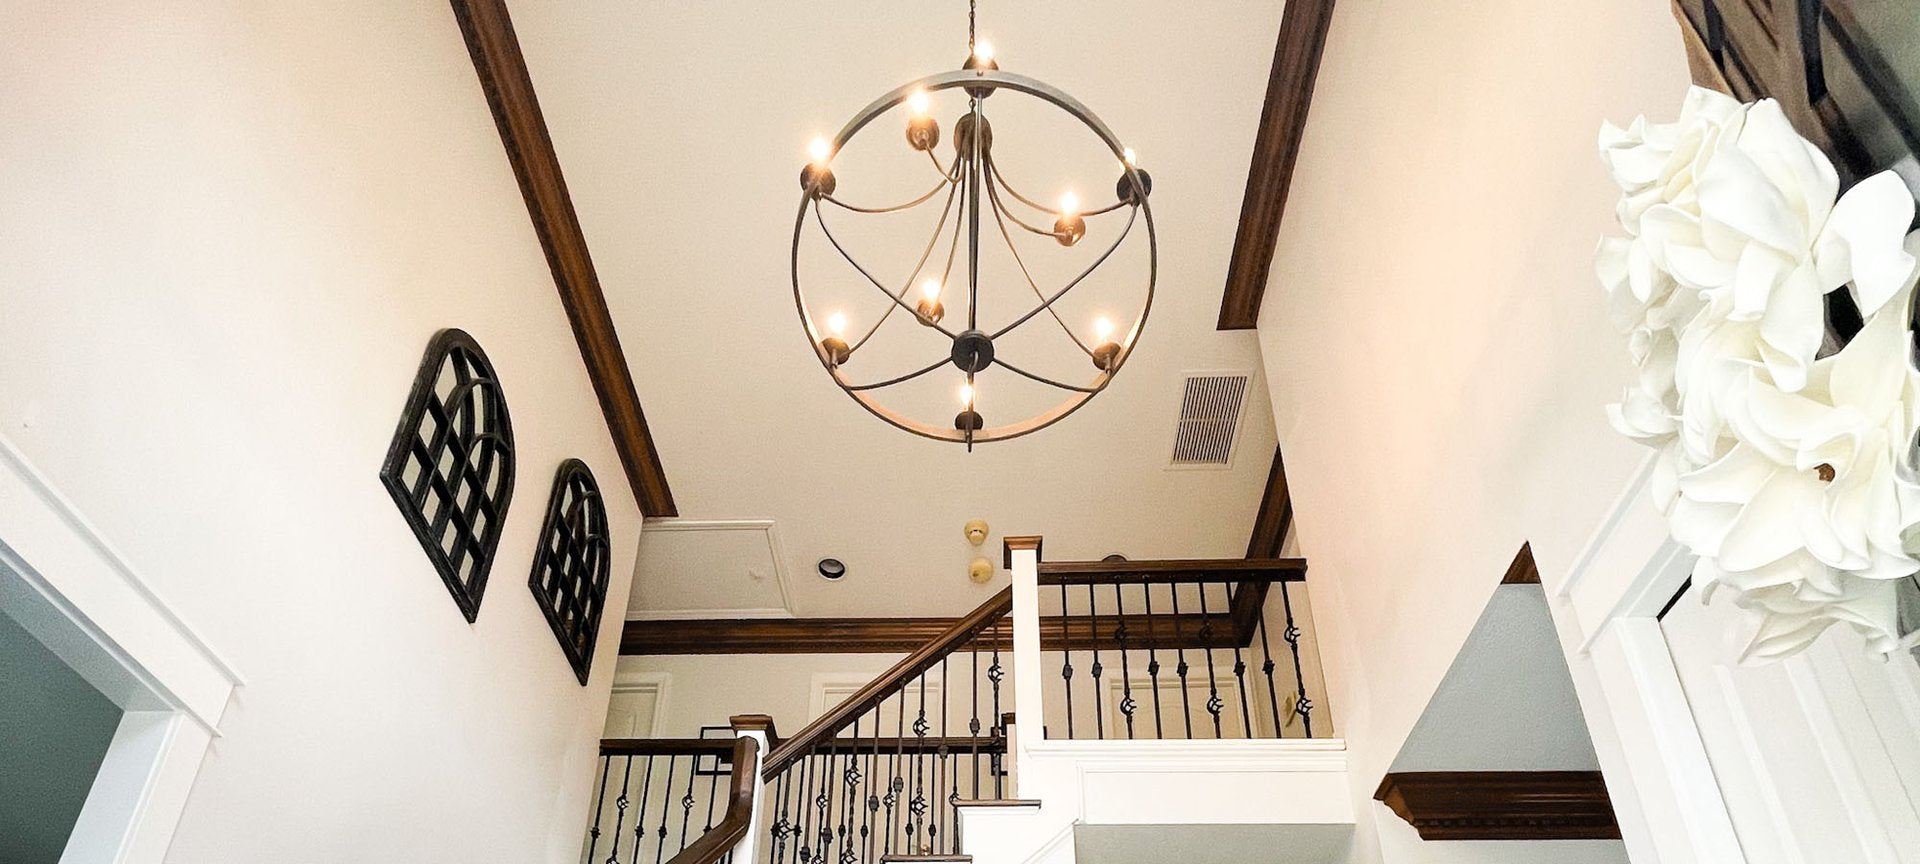 Design Define Ambiance urban ambiance luxury lighting fixtures for the inspired home transform open spaces